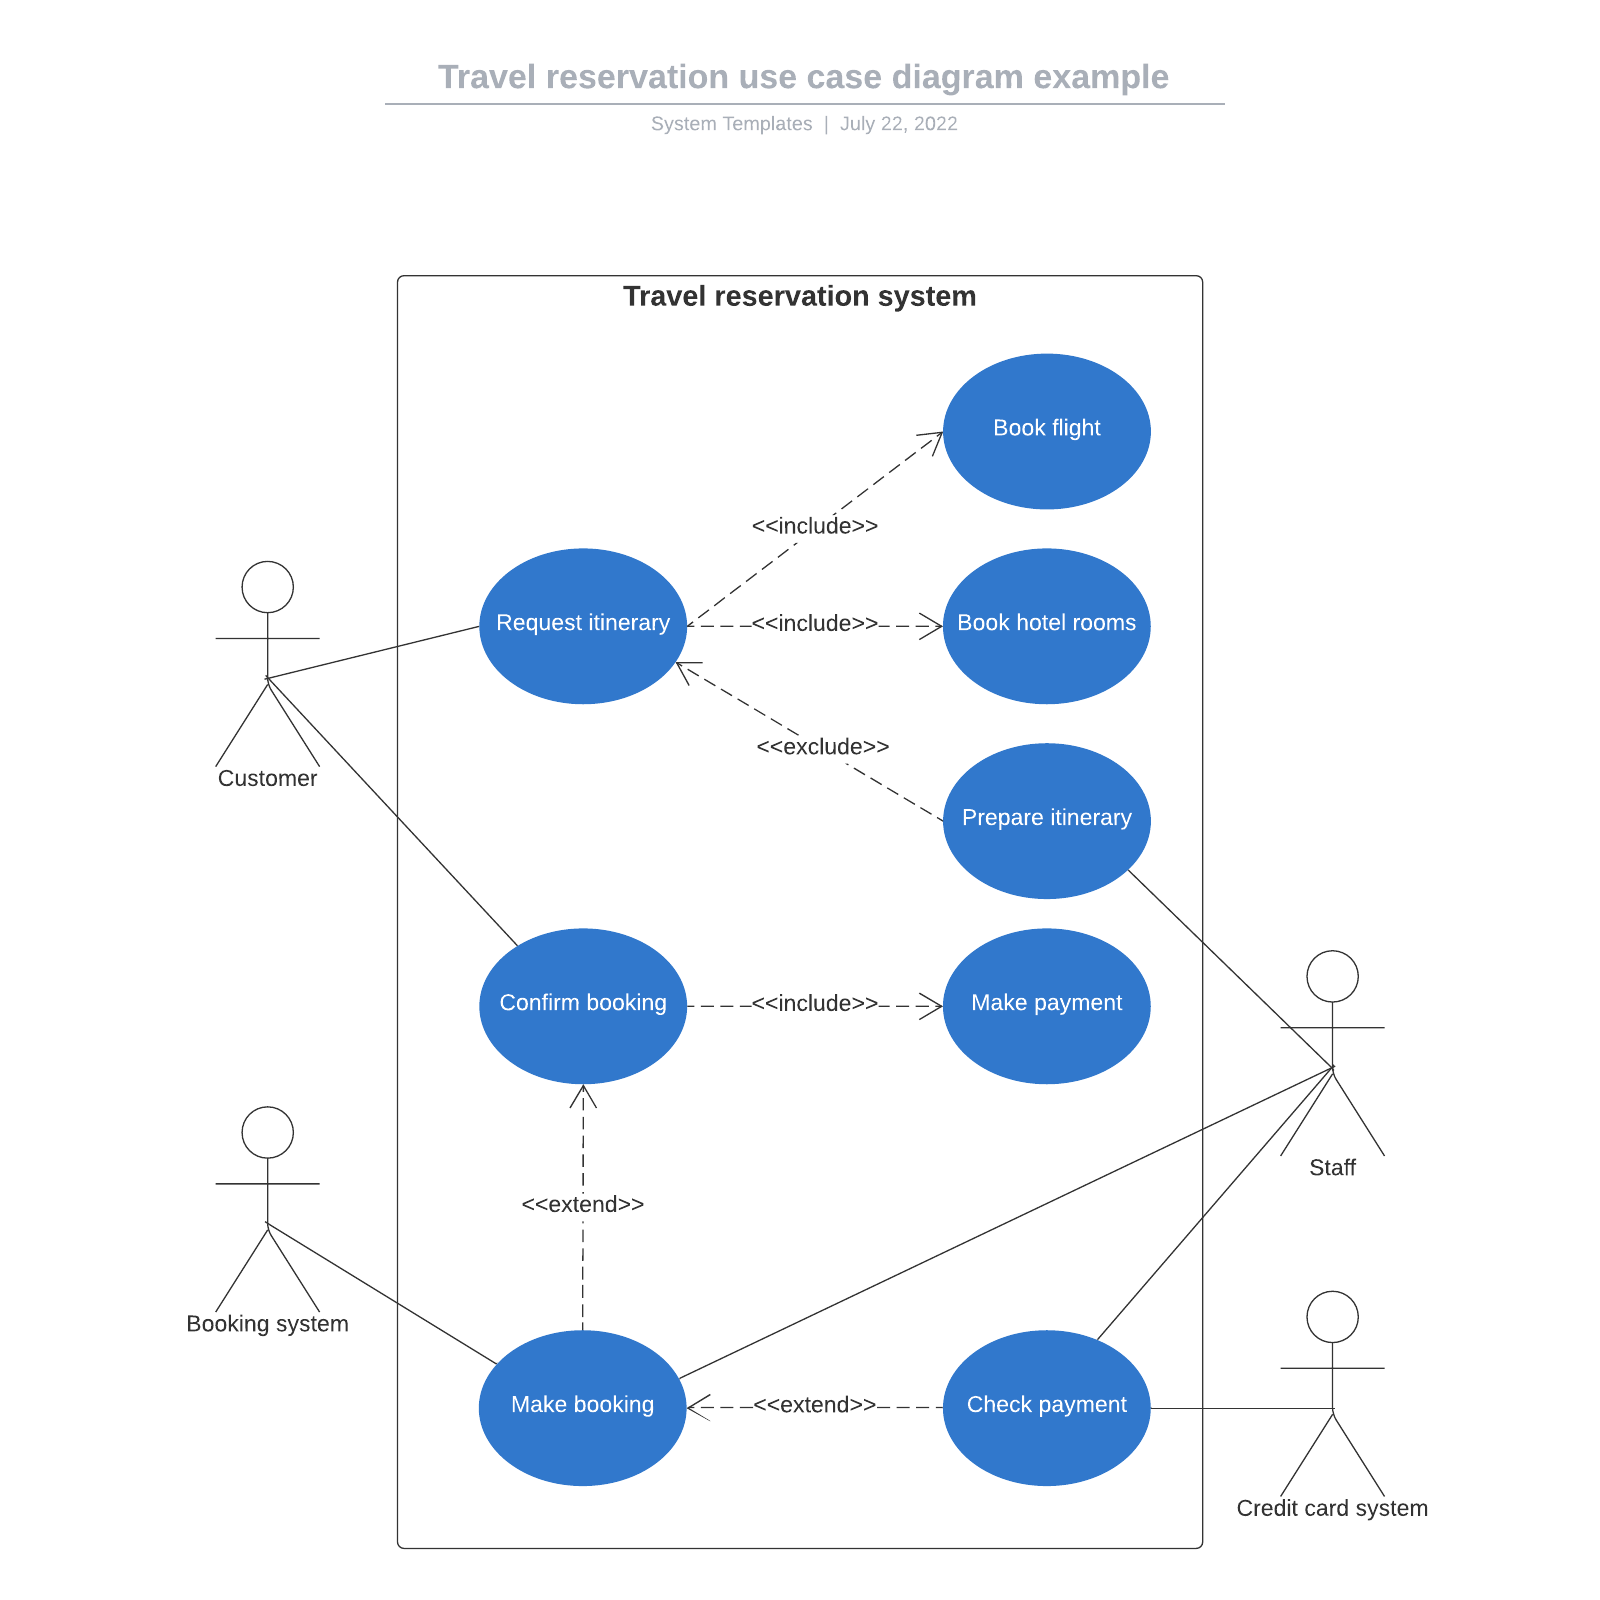 Travel reservation use case diagram example